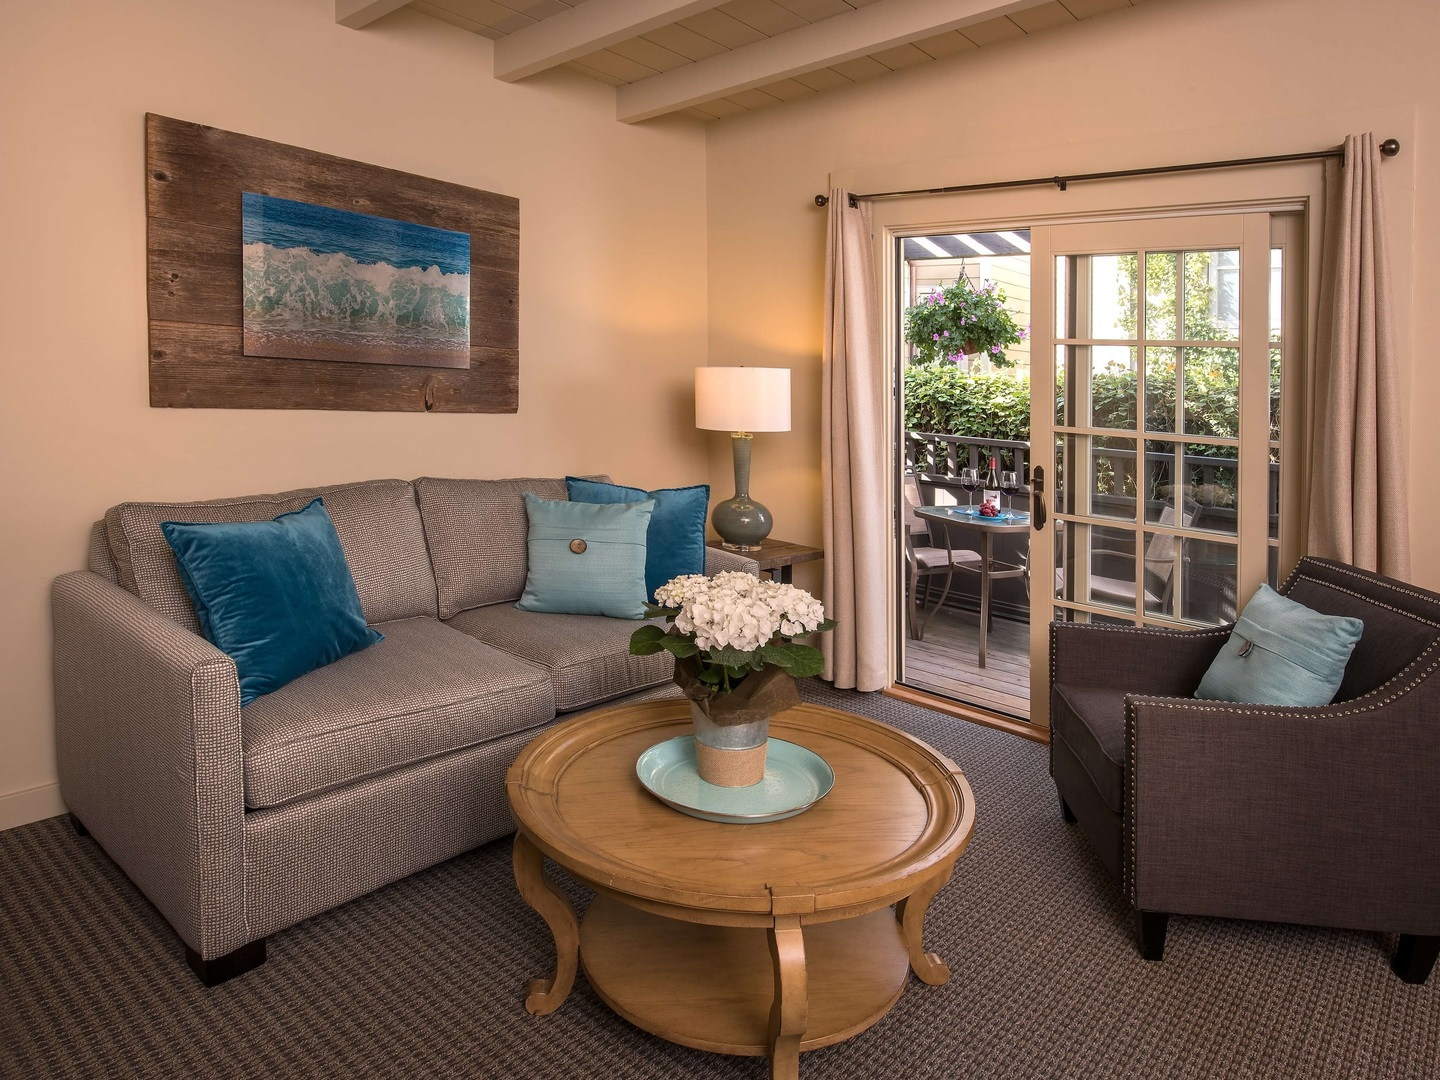 A living room filled with furniture and a large window at Carmel Country Inn.